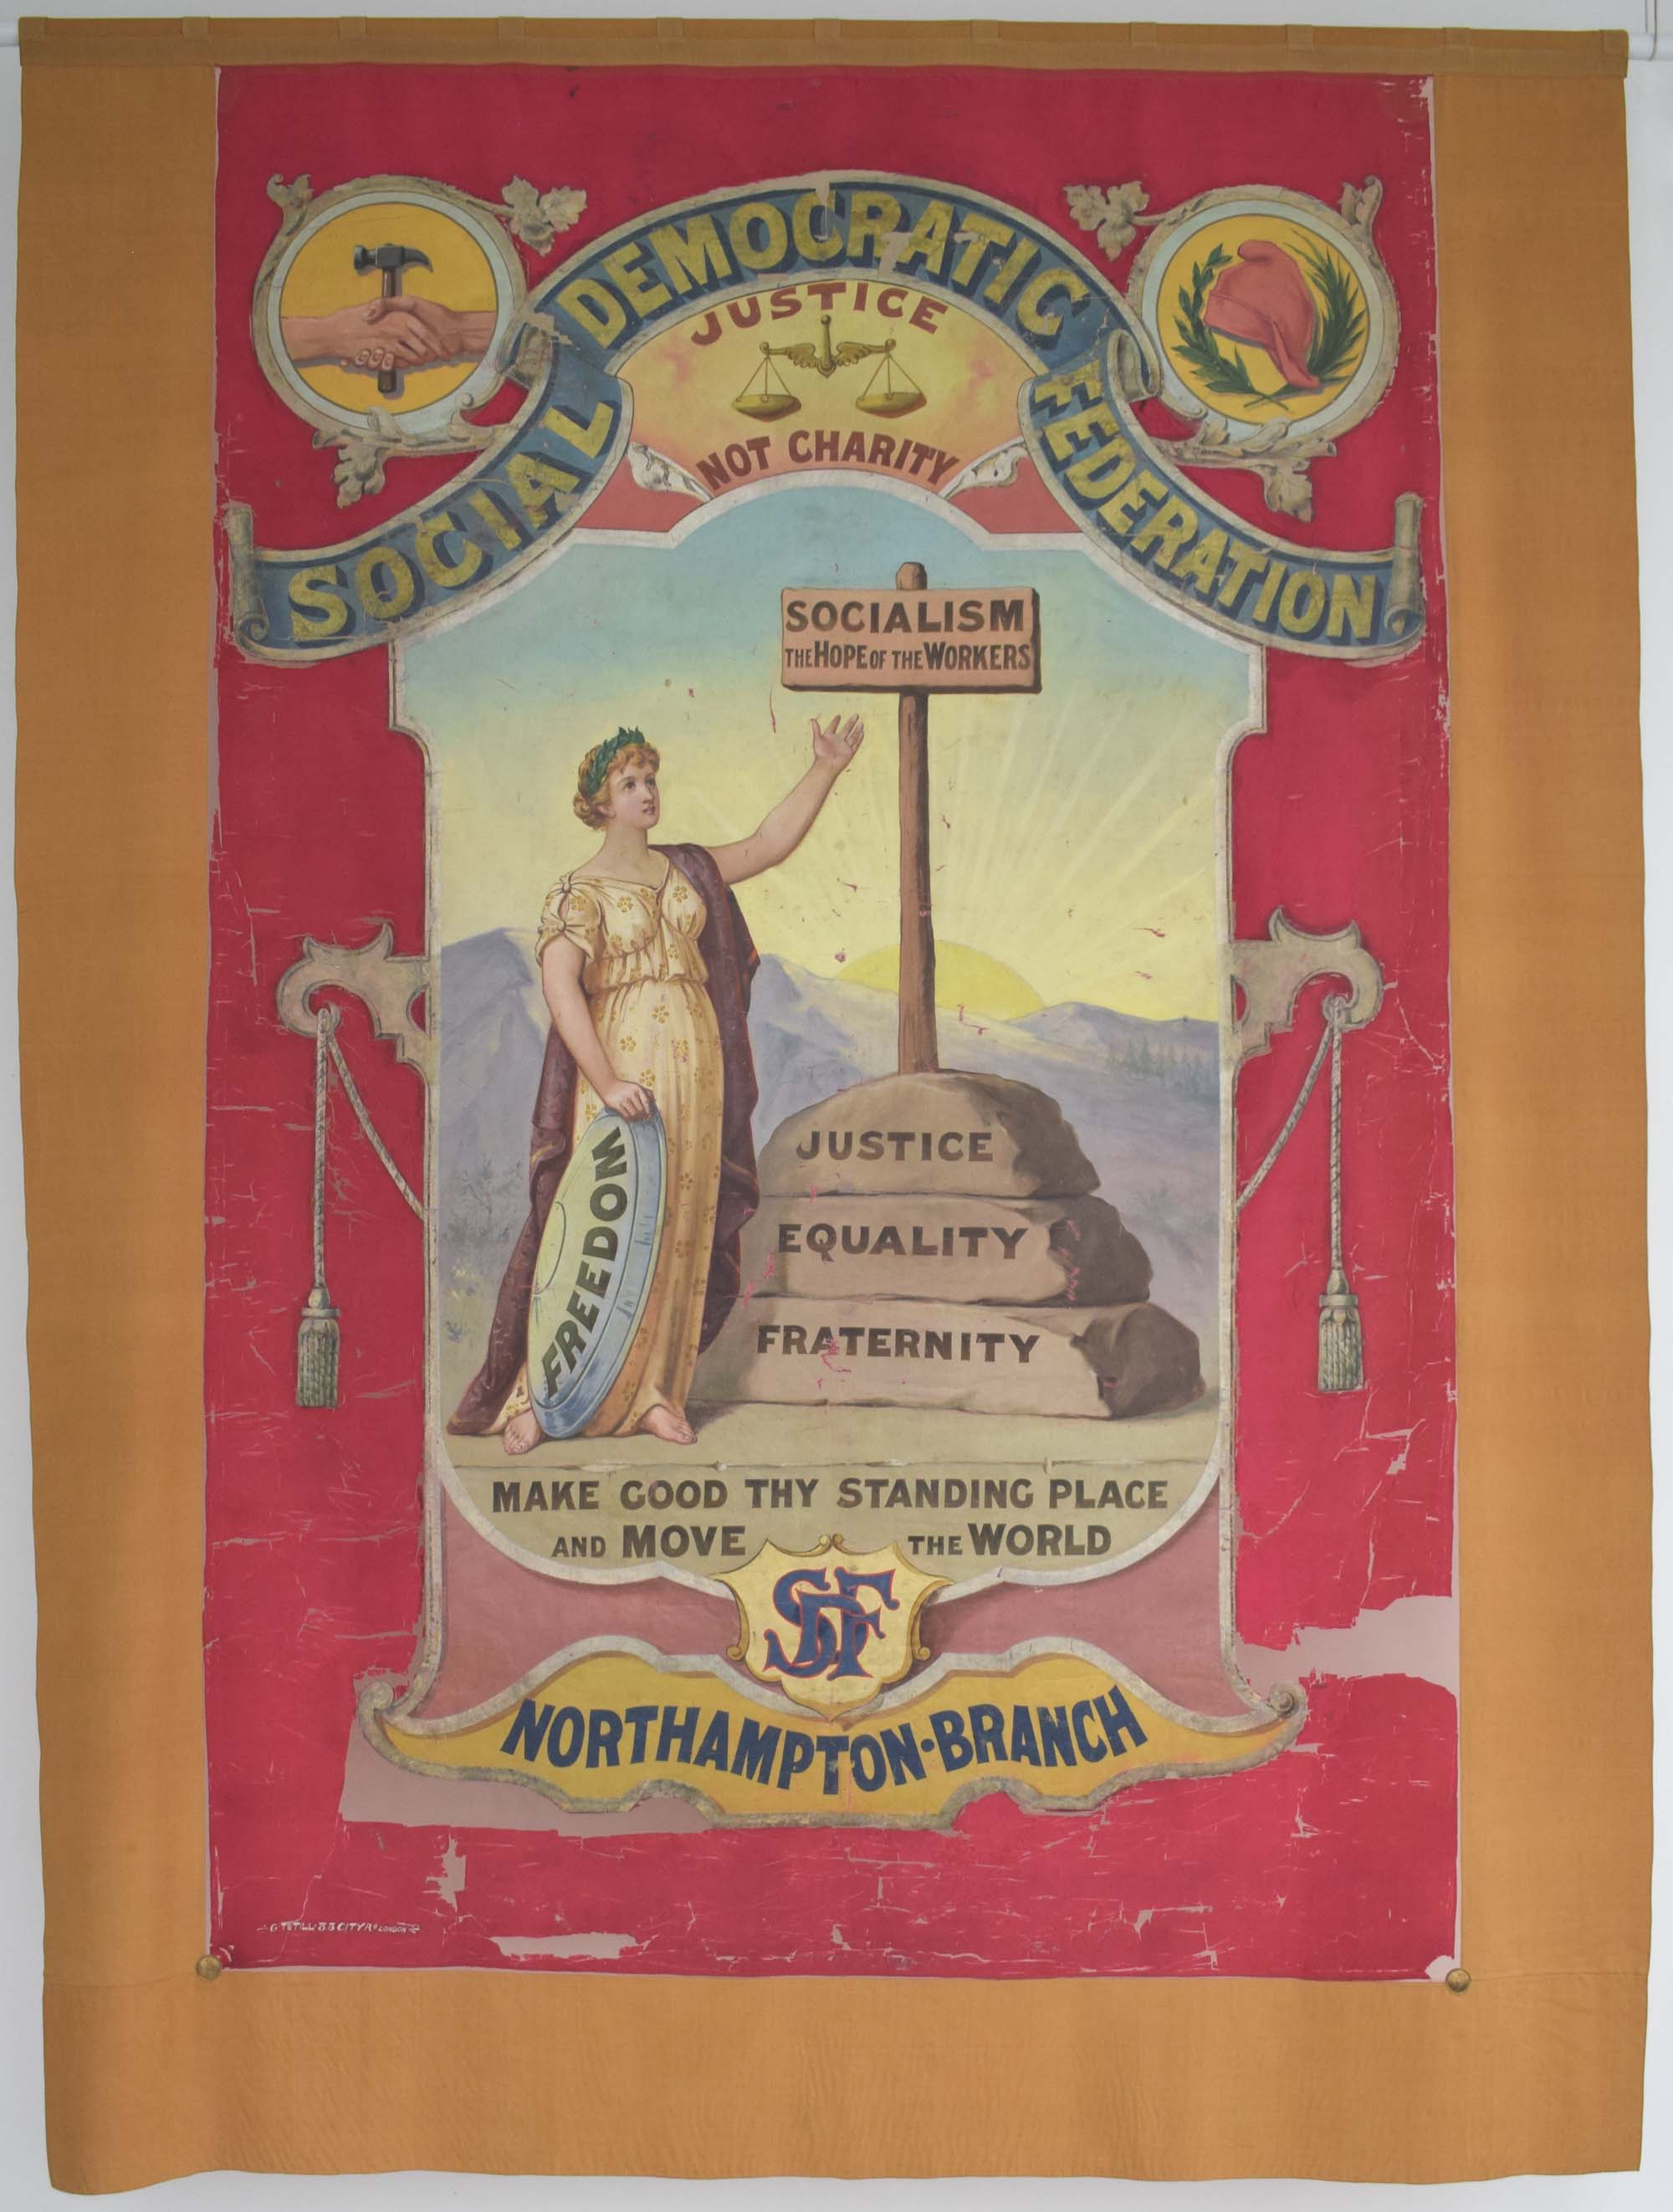 a political banner for the Social Democratic Federation with a female figure central